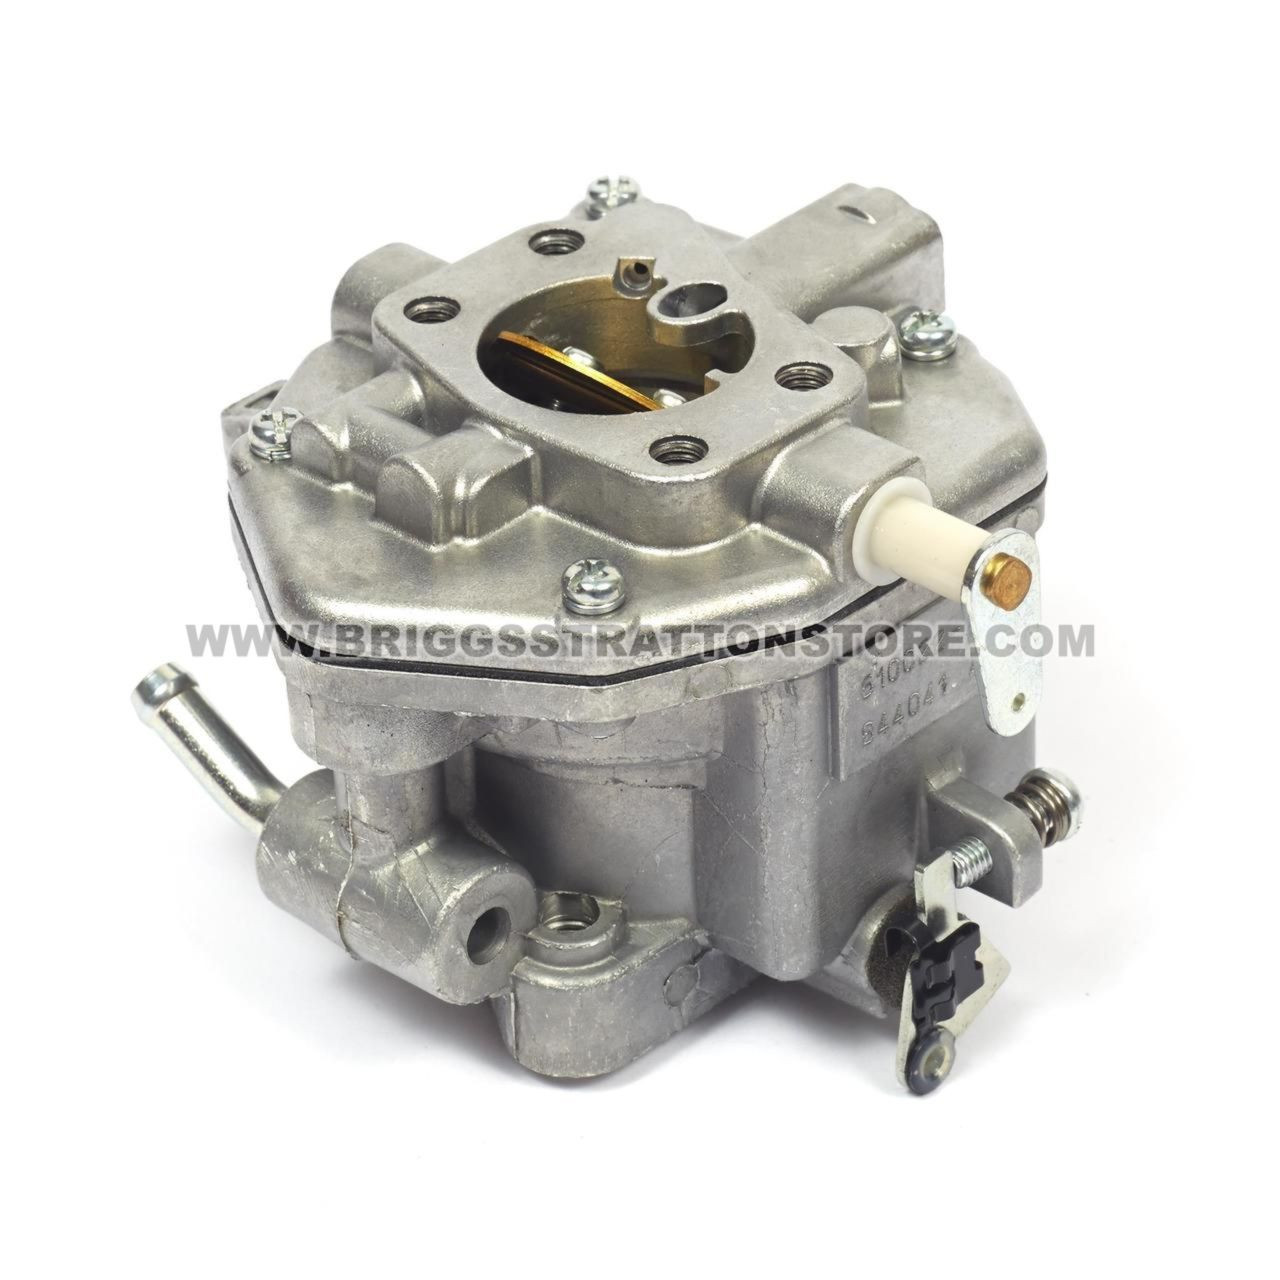 BRIGGS AND STRATTON 845906 - CARBURETOR (Briggs OEM part)